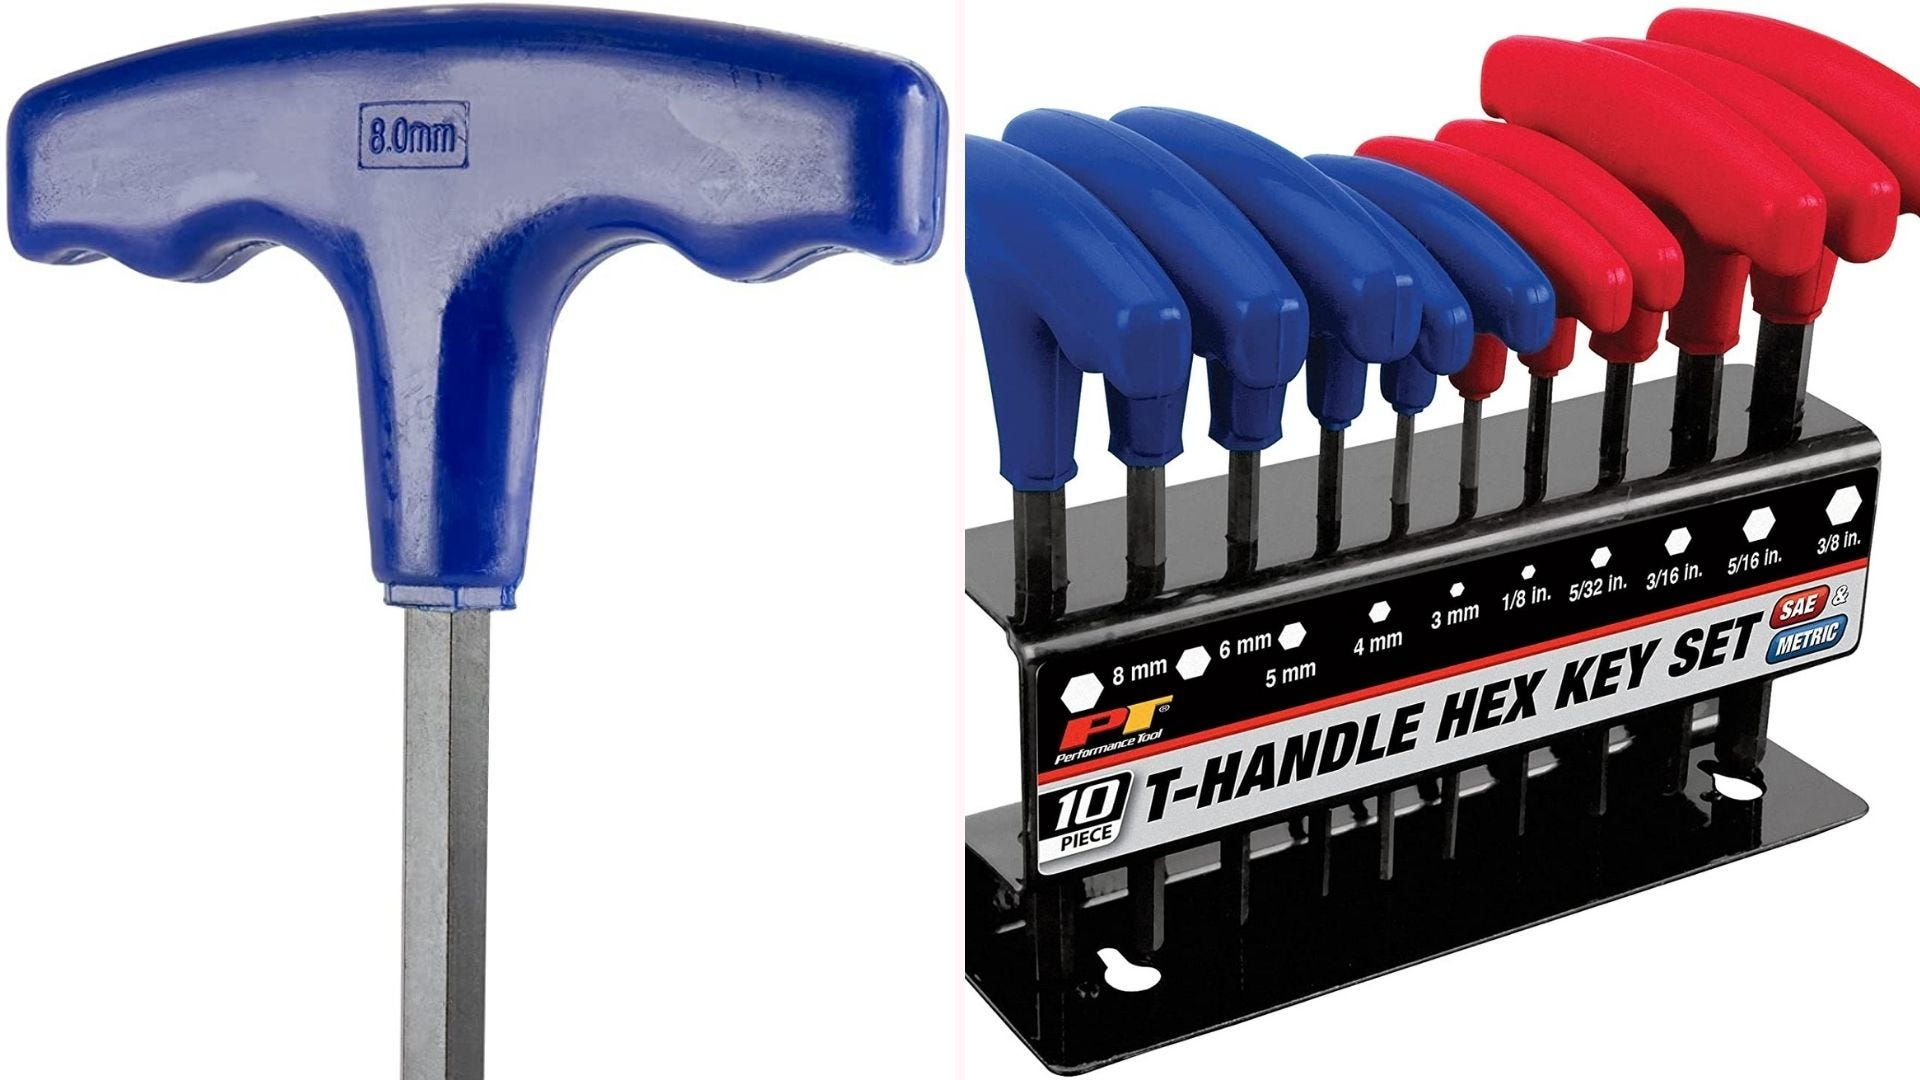 Blue and red T-handle hex keys standing in a set